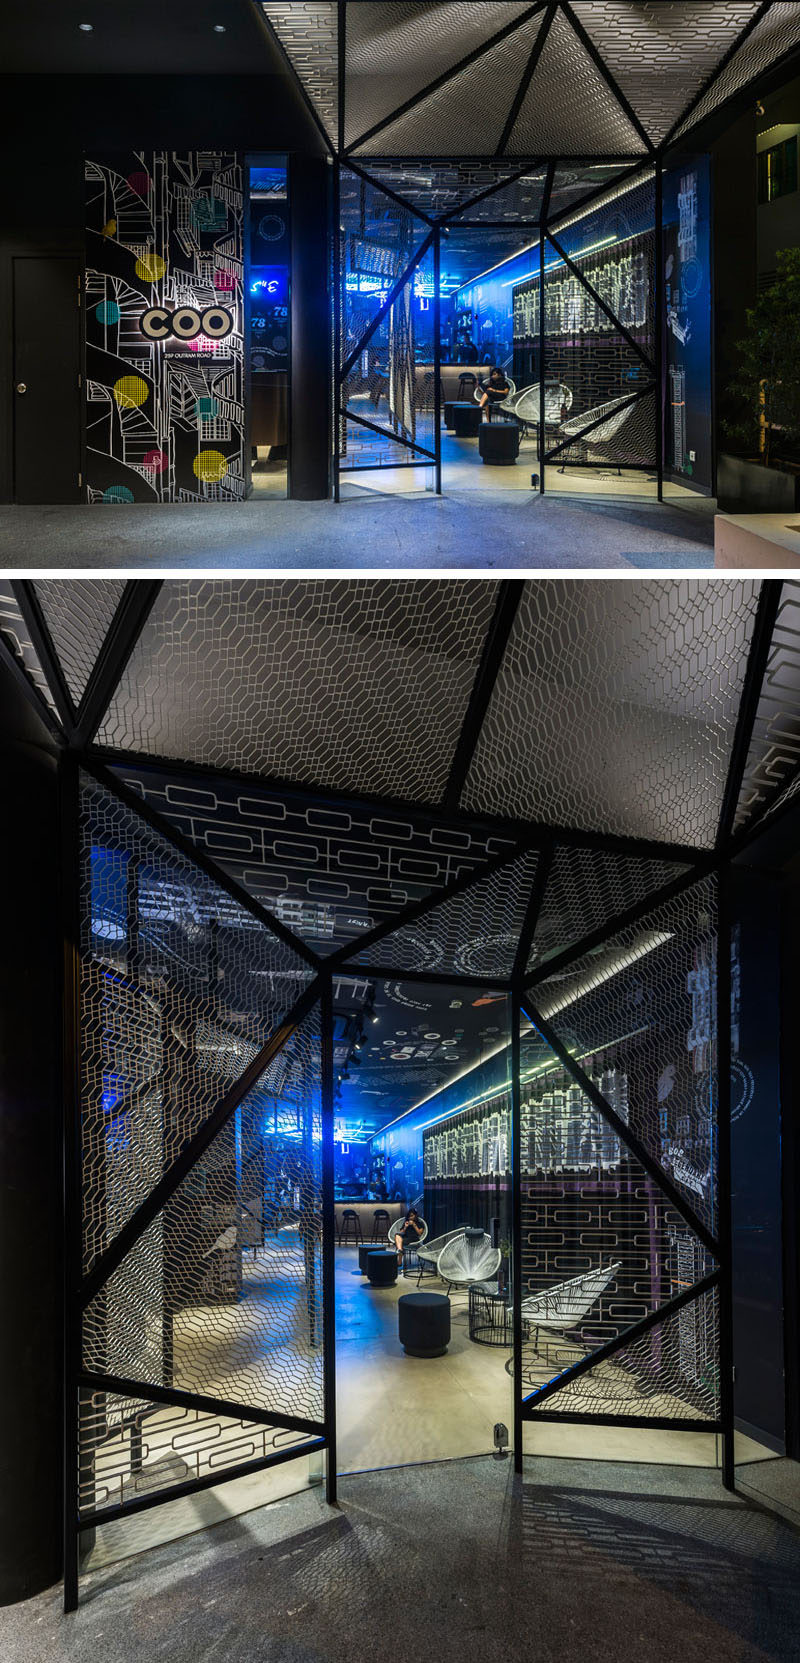 The eye-catching entrance of this Singaporean hostel is framed by metal mesh, taking cues from the metal gates of the old housing estates around the area